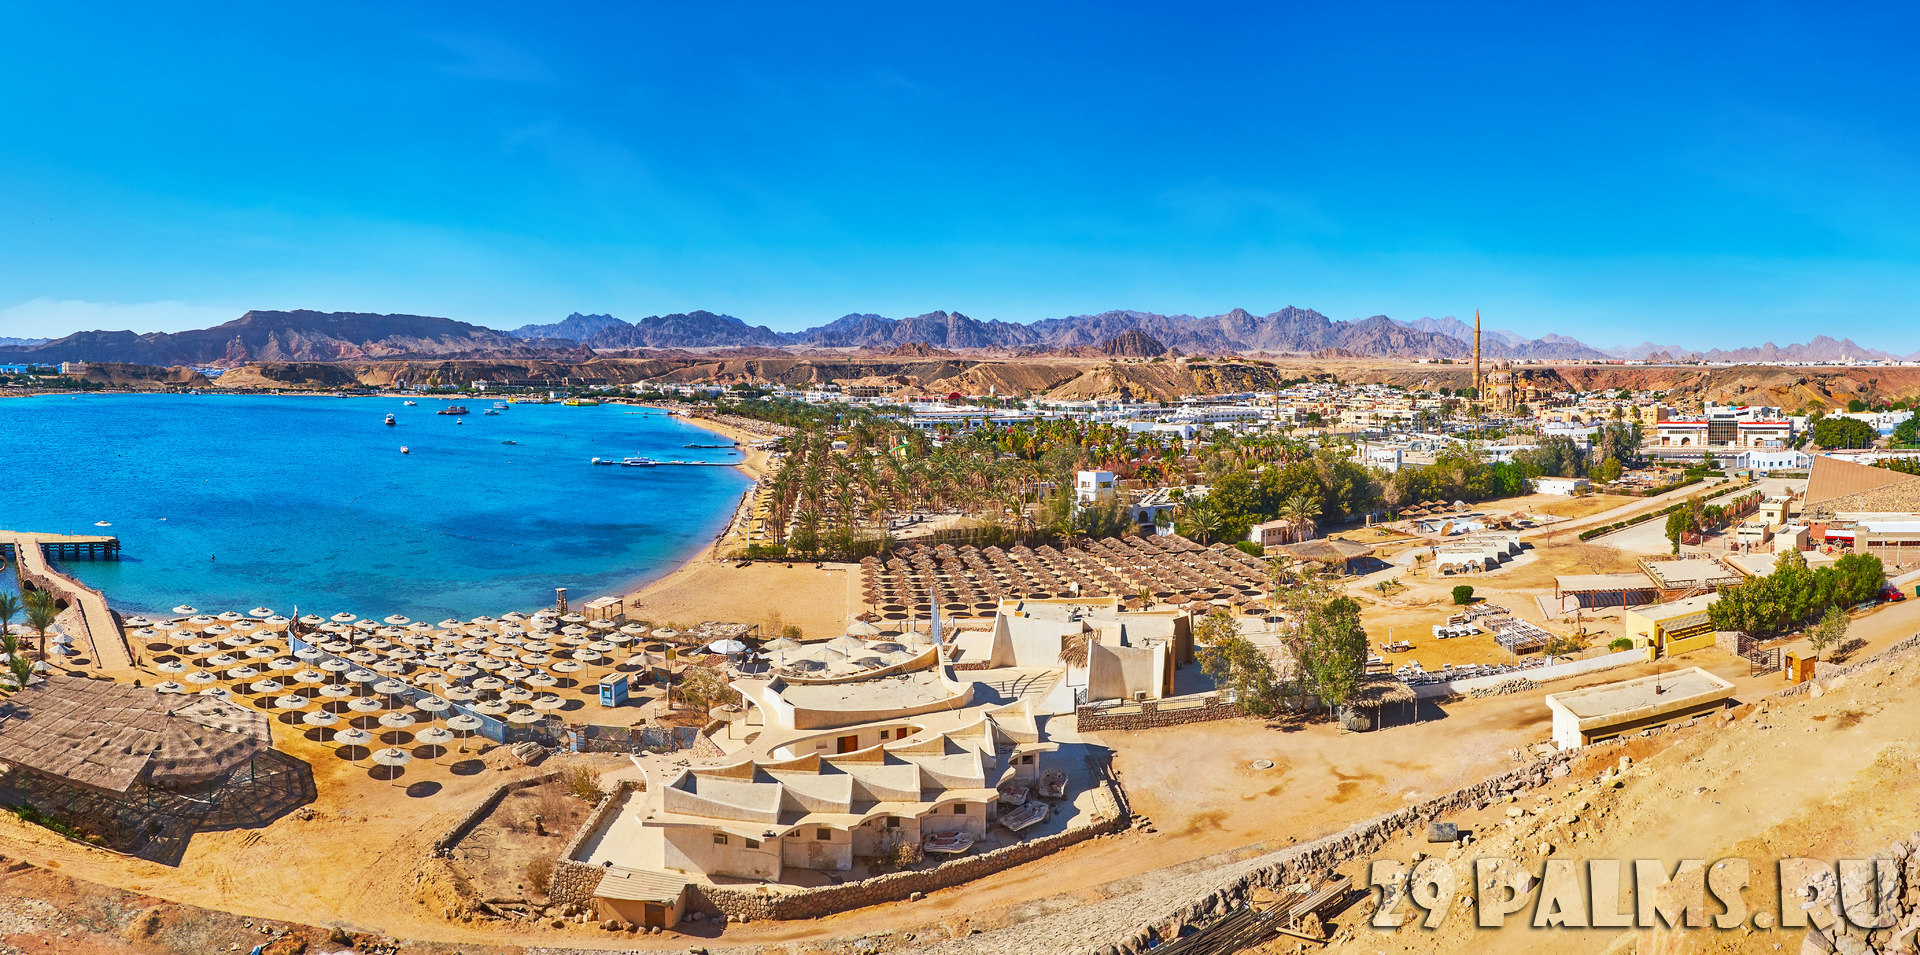 Клуб путешествий Павла Аксенова. Египет. Синай. Шарм-эль-Шейх. Aerial view of El Maya in Sharm El Sheikh, Egypt. Фото efesenko - Depositphotos